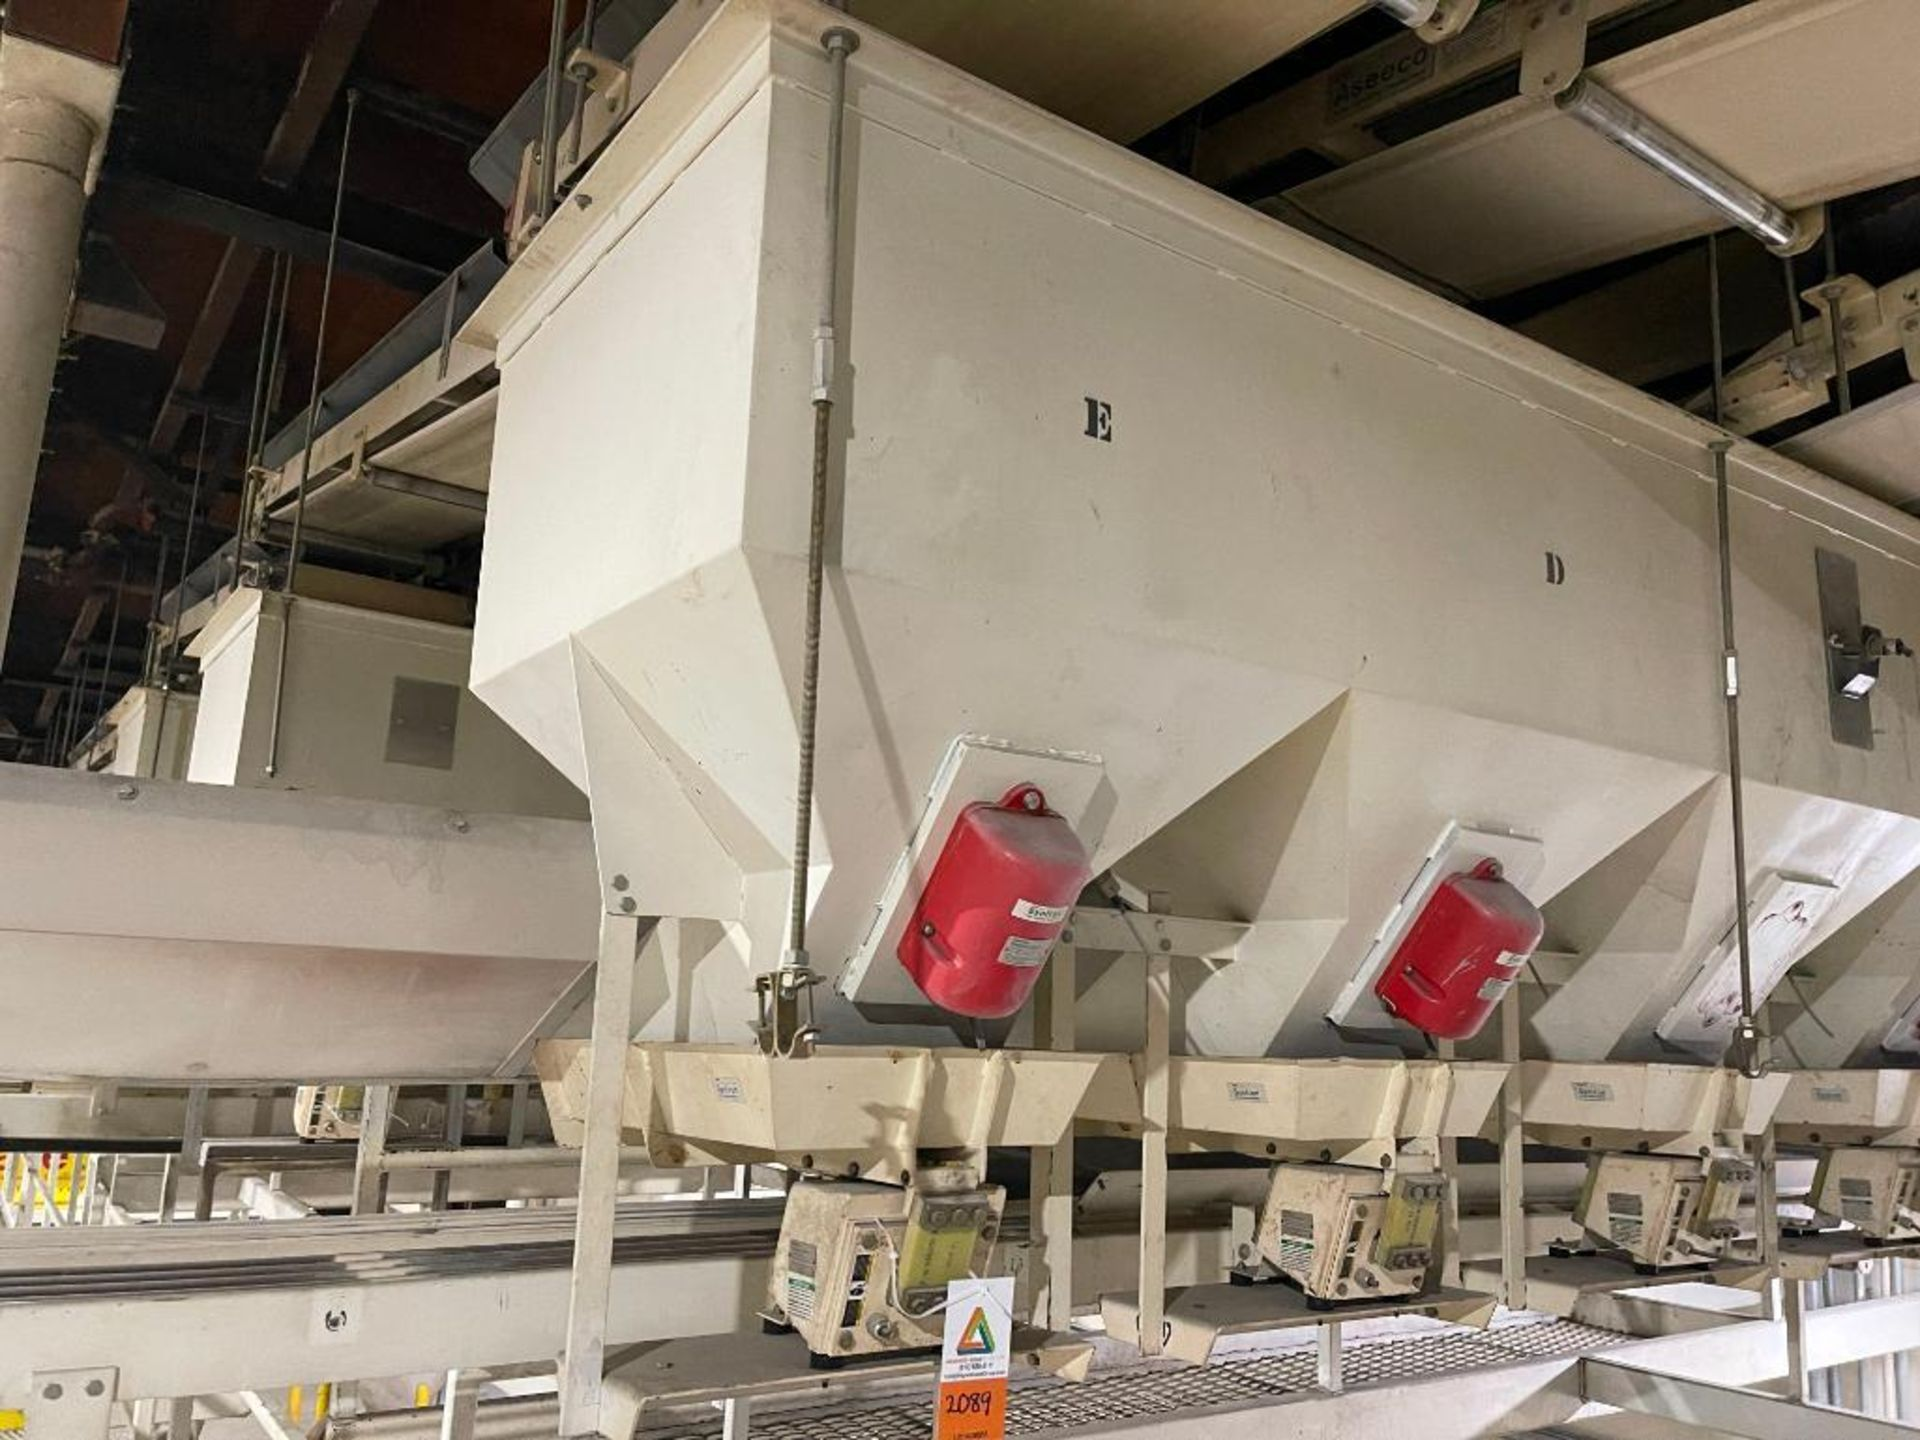 Aseeco 5-bin blending system with 5 Syntron vibratory feeders on bottom - Image 15 of 18